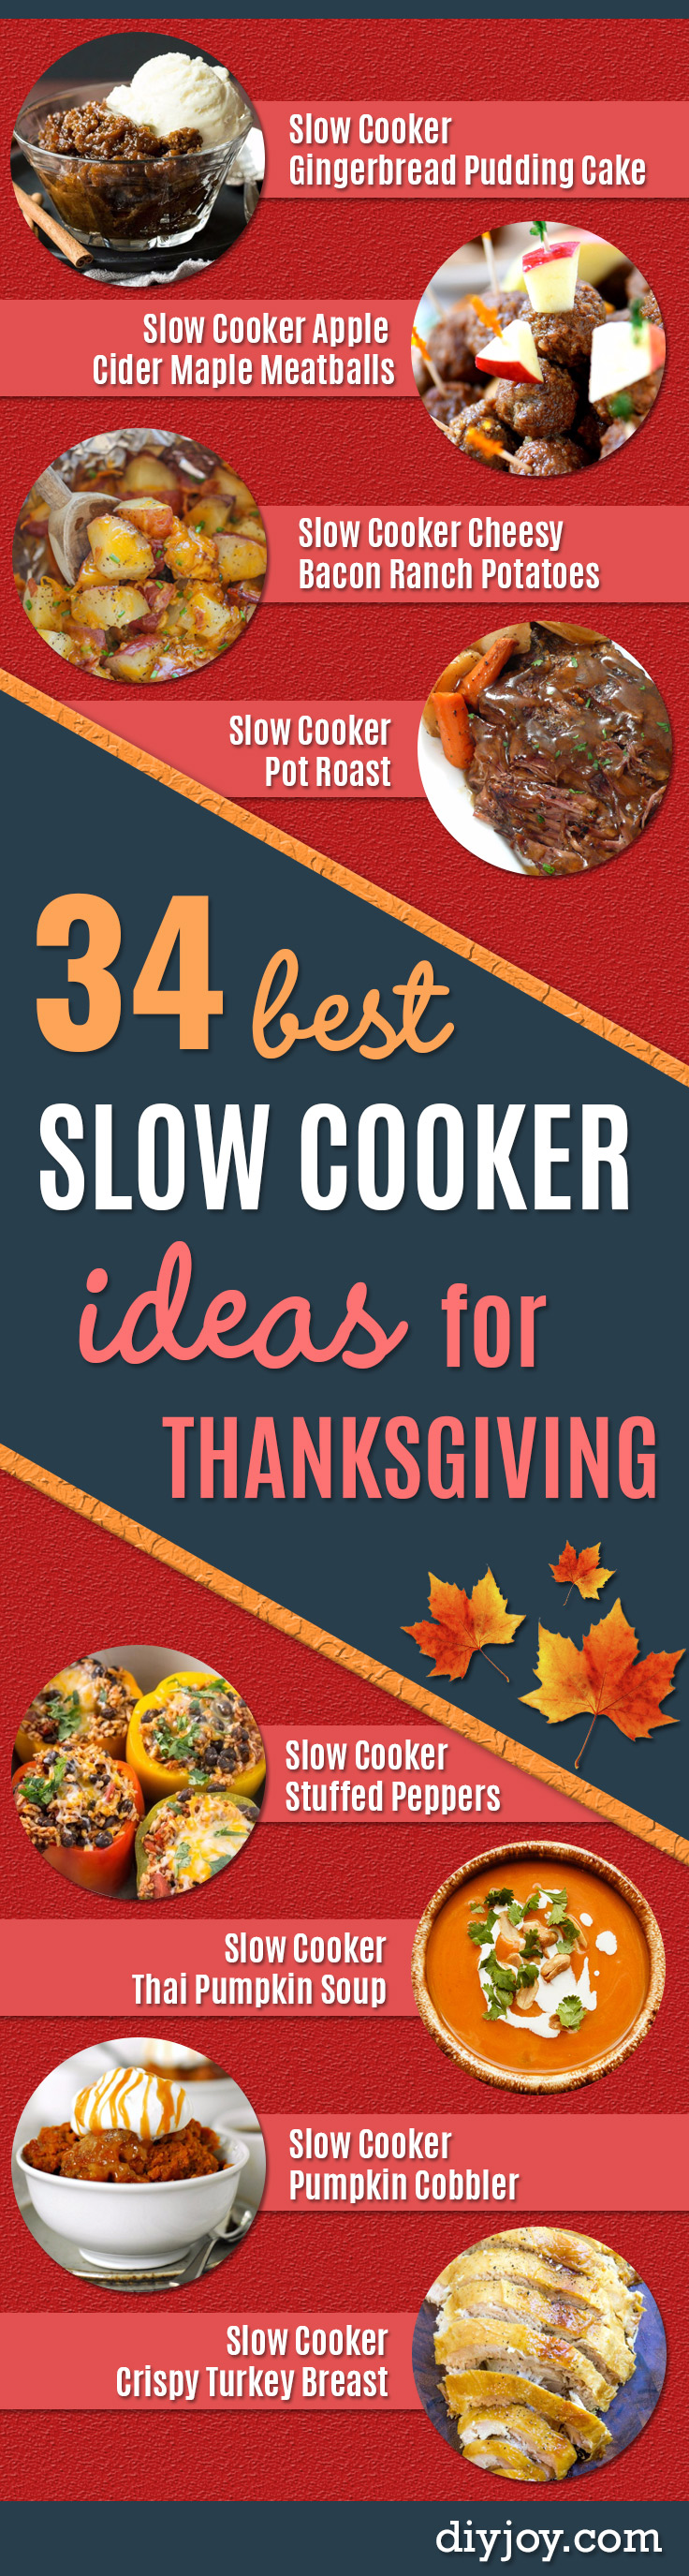 Thanksgiving Recipes You Can Make In A Crockpot or Slow Cooker - Soups, Stews, Desserts, Dips, Sides and Vegetable Recipe Ideas for Your Crock Pot - Simple and Quick Last Minute Cooking for Thanksgiving Dinner http://diyjoy.com/thanksgiving-recipes-crockpot